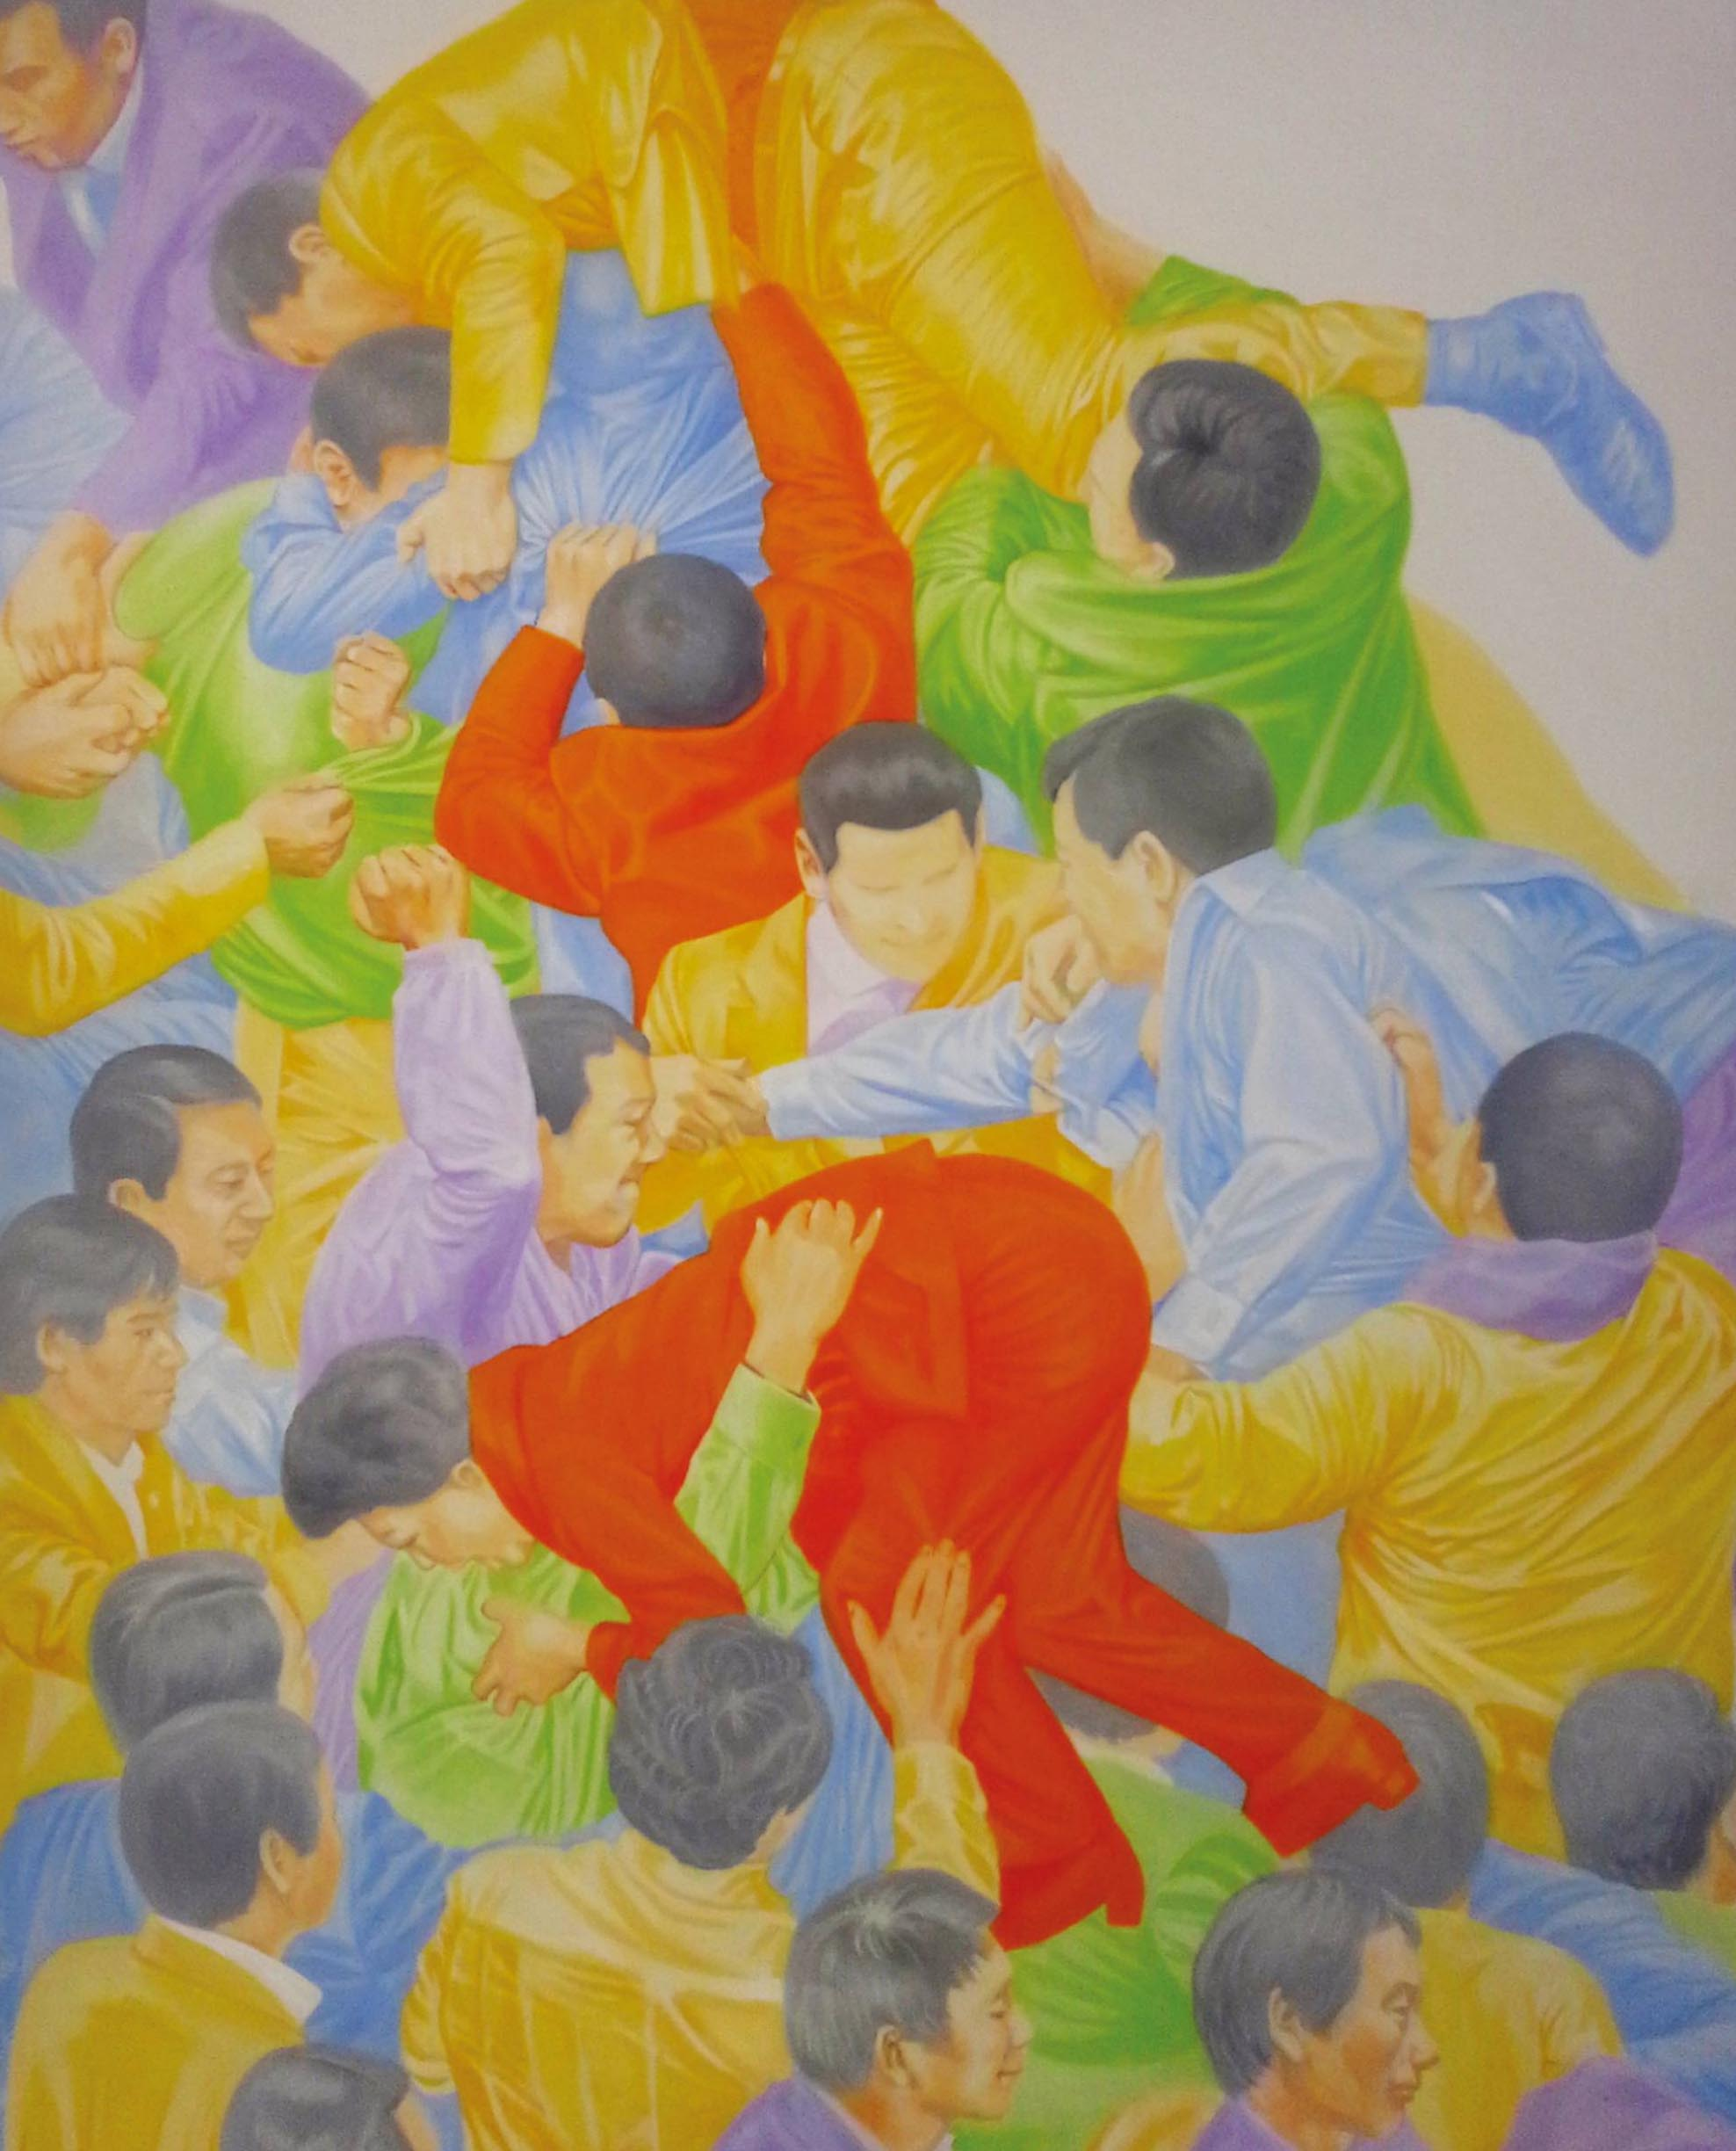 Su hyun Kim, Color Festival , 2017, oil on canvas, 162 x 130 cm